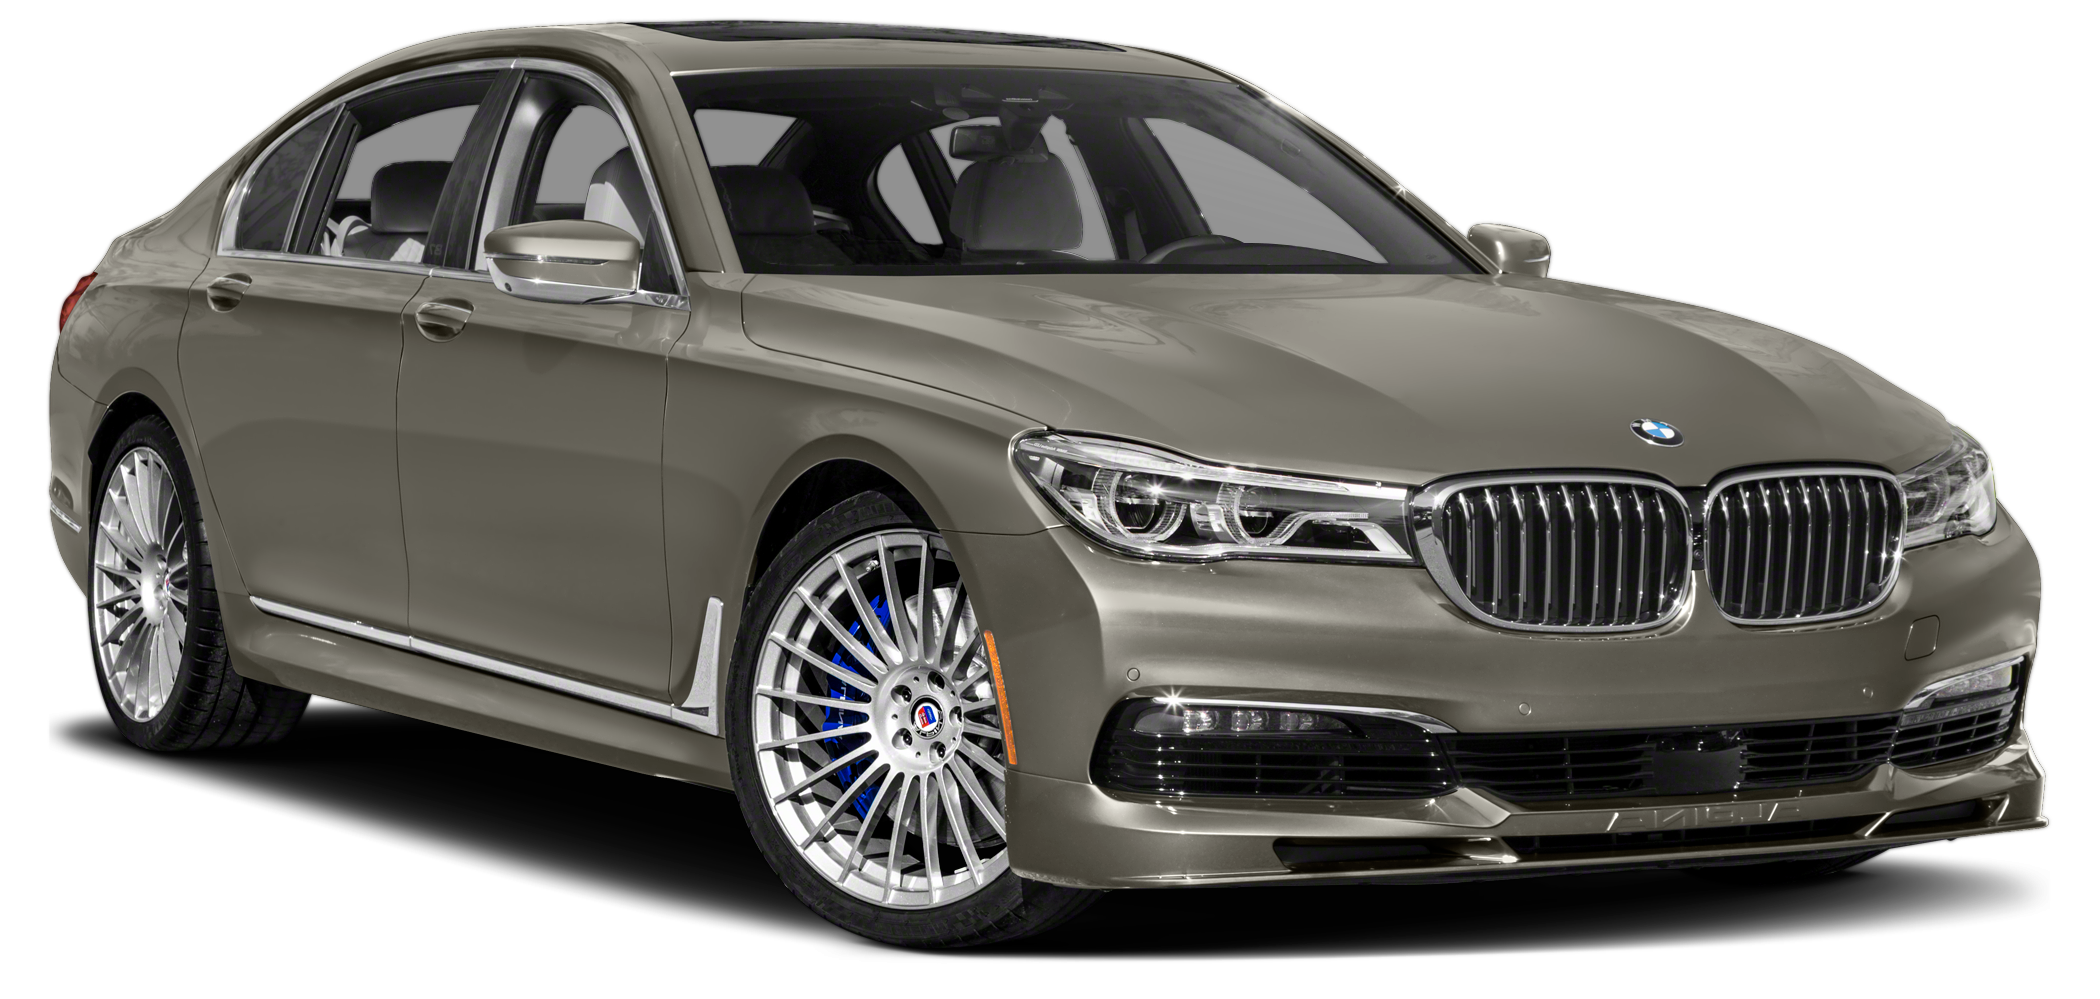 42 The 2019 Bmw Alpina B7 For Sale Redesign with 2019 Bmw Alpina B7 For Sale